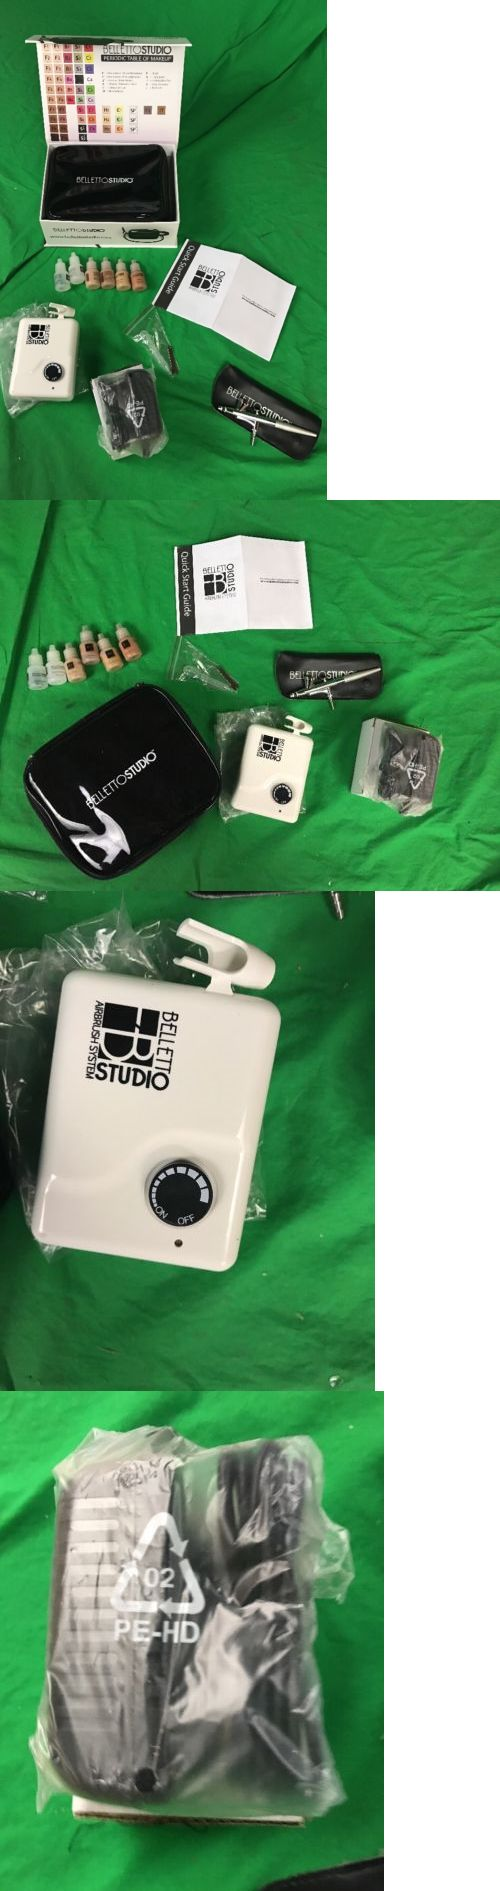 Other Makeup Tools and Accs: New In Box - Belletto Studio Hd Airbrush Makeup System - W/Makeup -> BUY IT NOW ONLY: $60.0 on eBay!